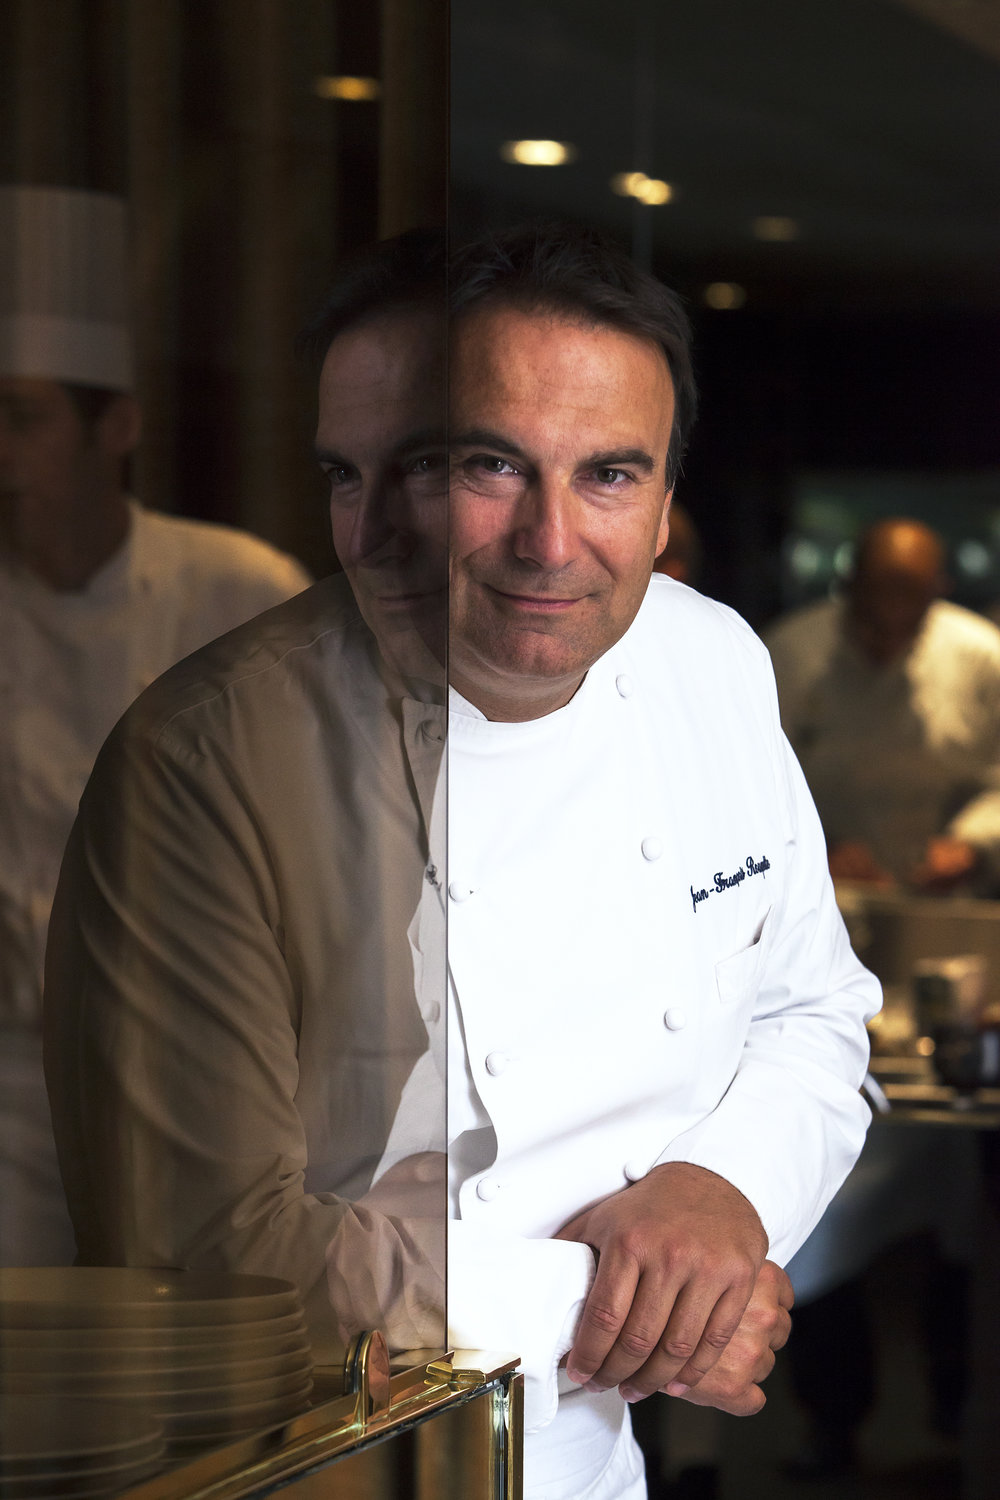 The Chef - Portrait.jpg